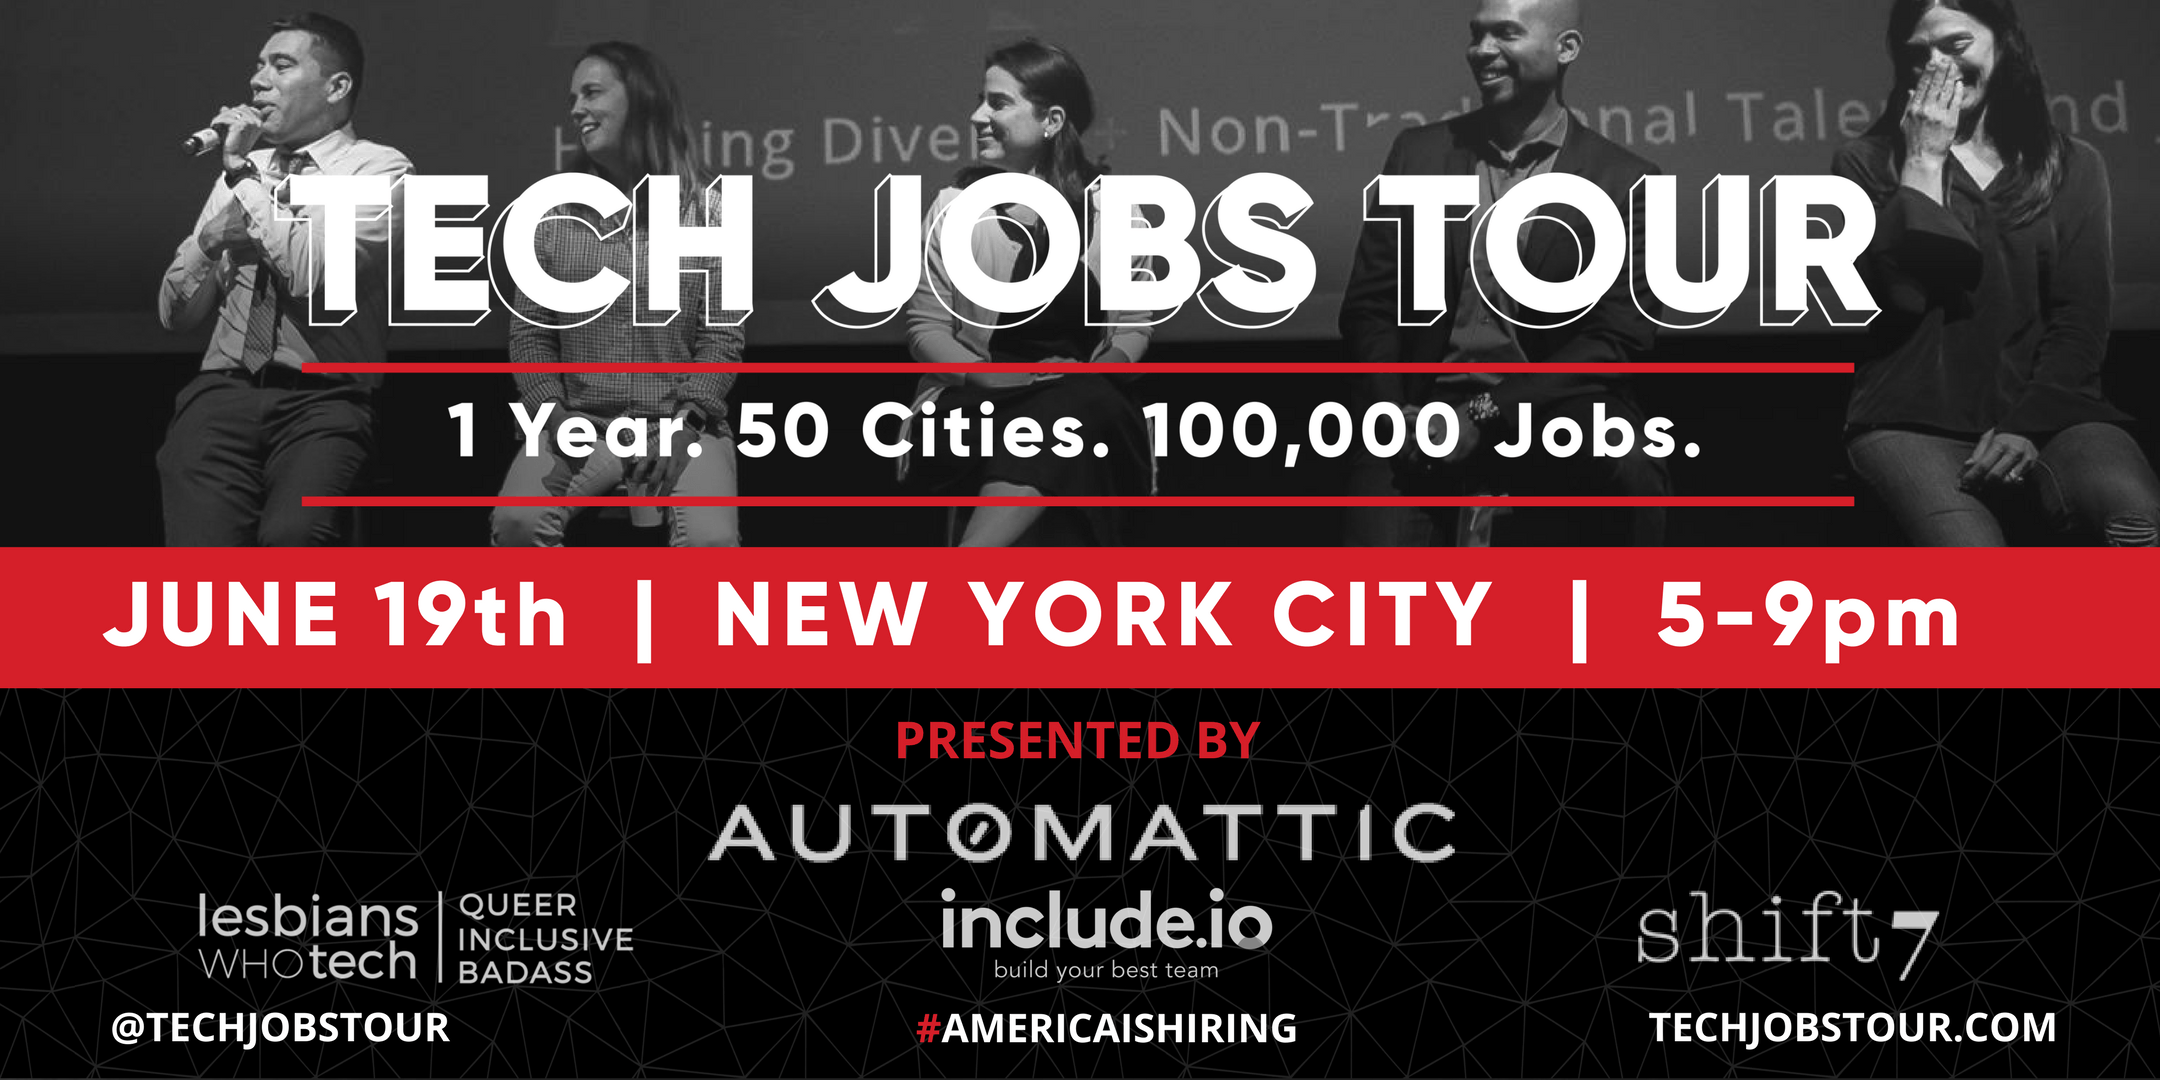 Tech Jobs Tour New York City  Career Fair &amp Speed Mentoring with Megan Smith 3rd CTO United States and CEO shift7  Tech Talks